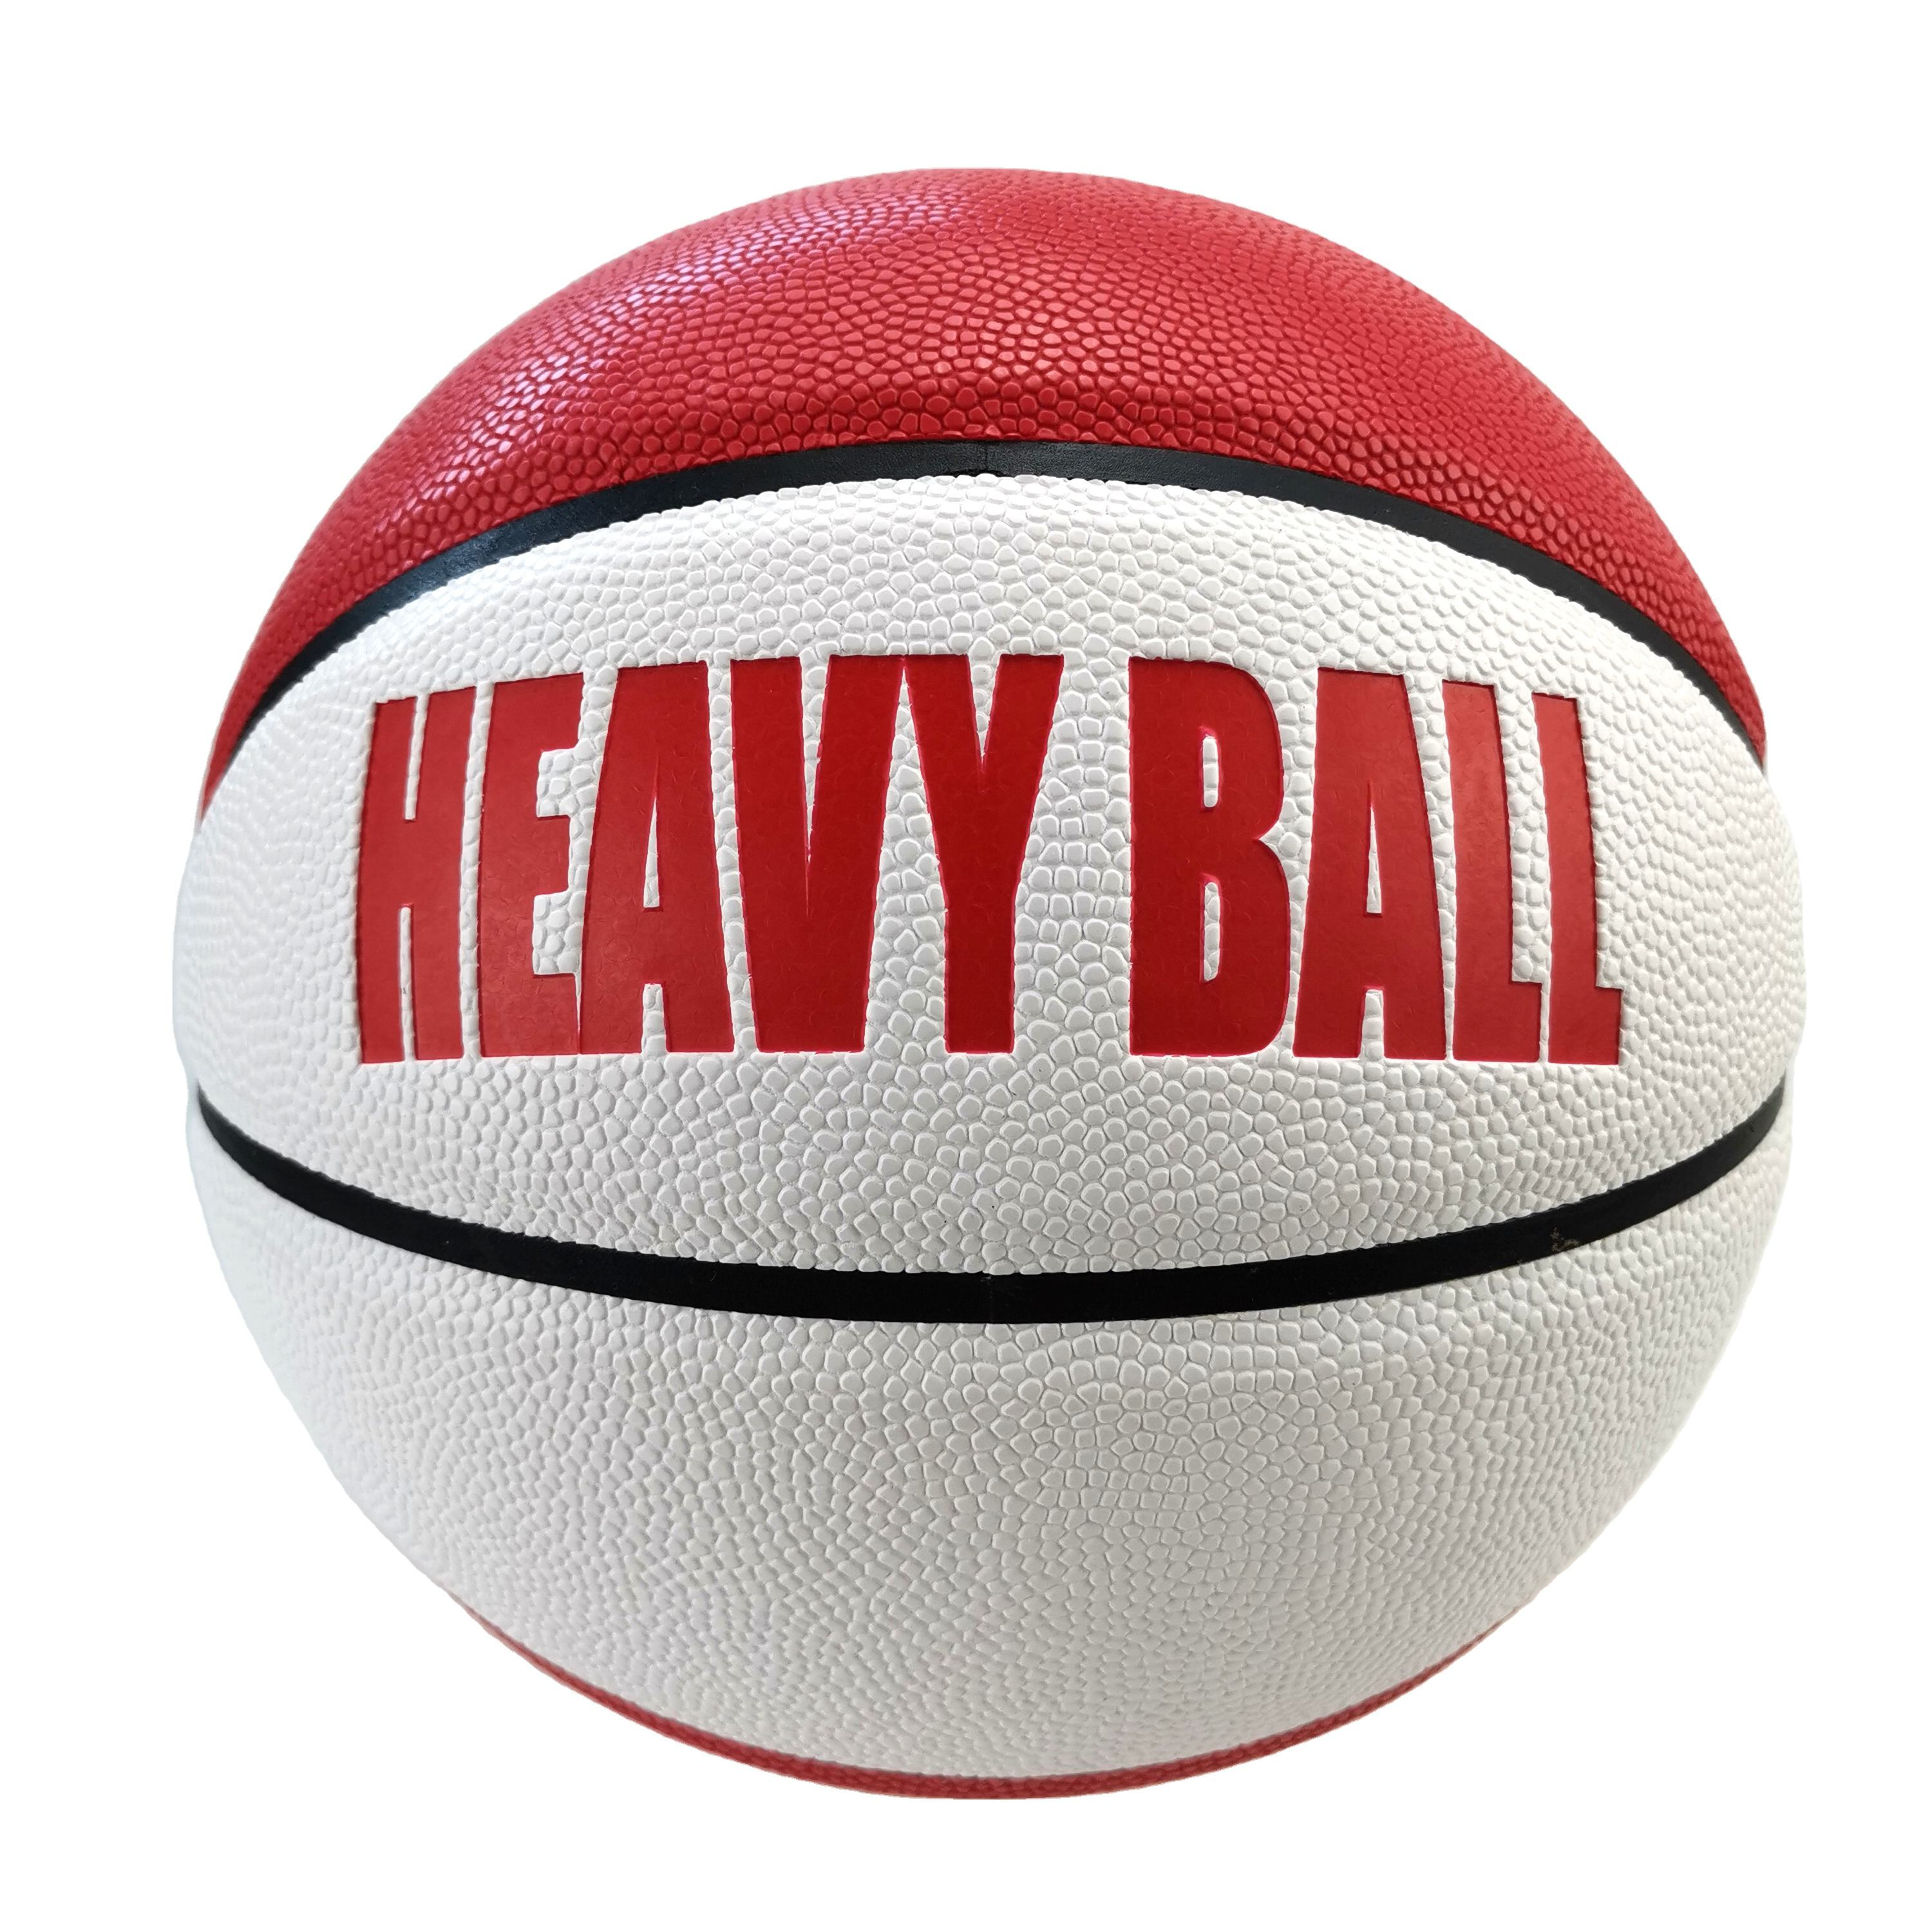 custom logo pu leather heavy basketball 1 kg, 1.3 kg, 1500 g weighted basketball for training camp